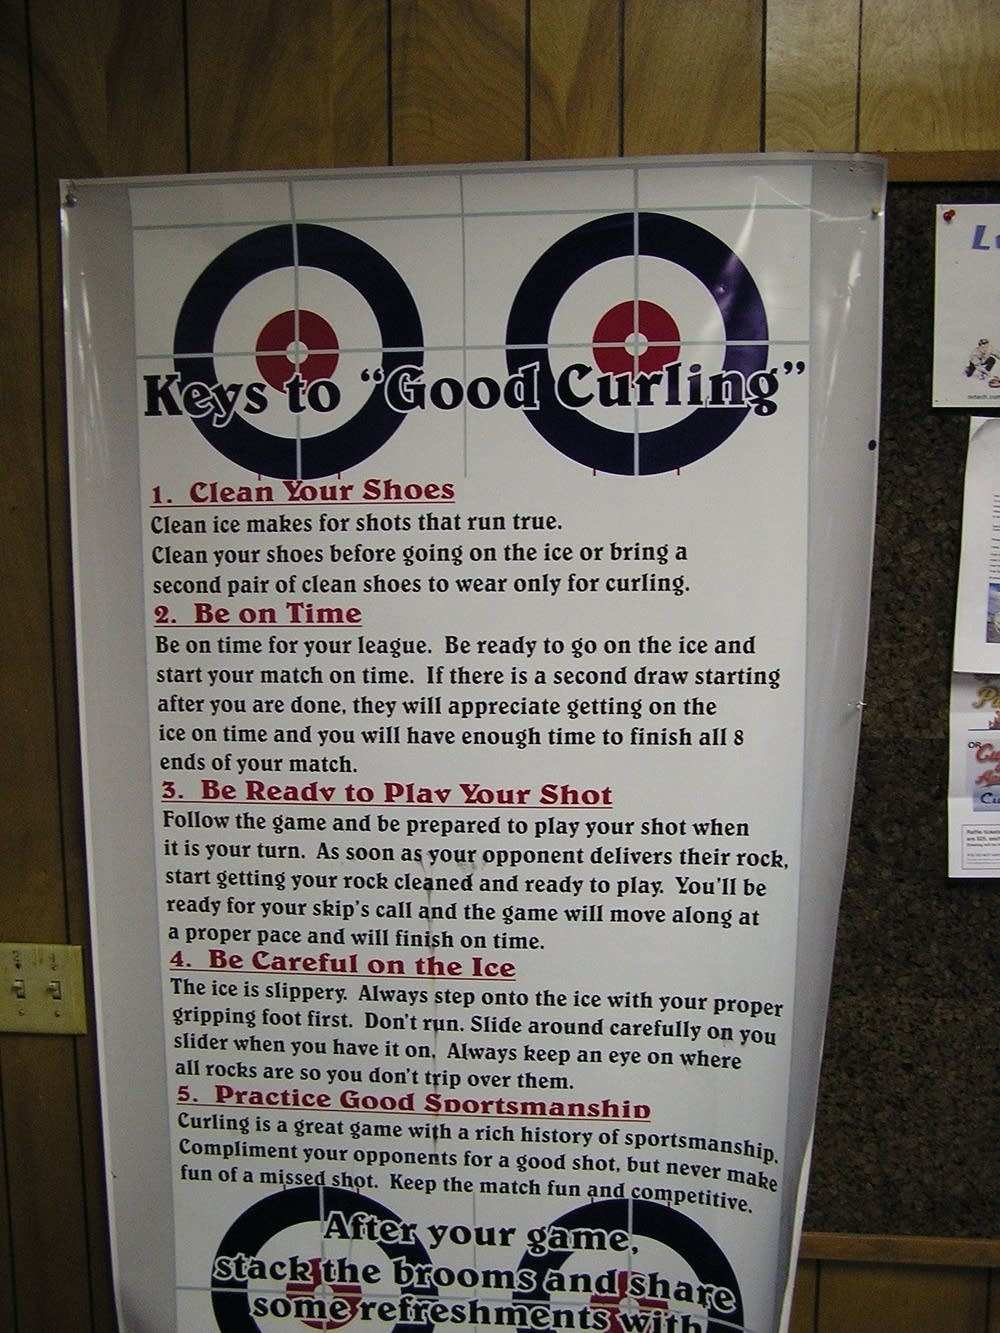 This poster reminds curlers to be good sports